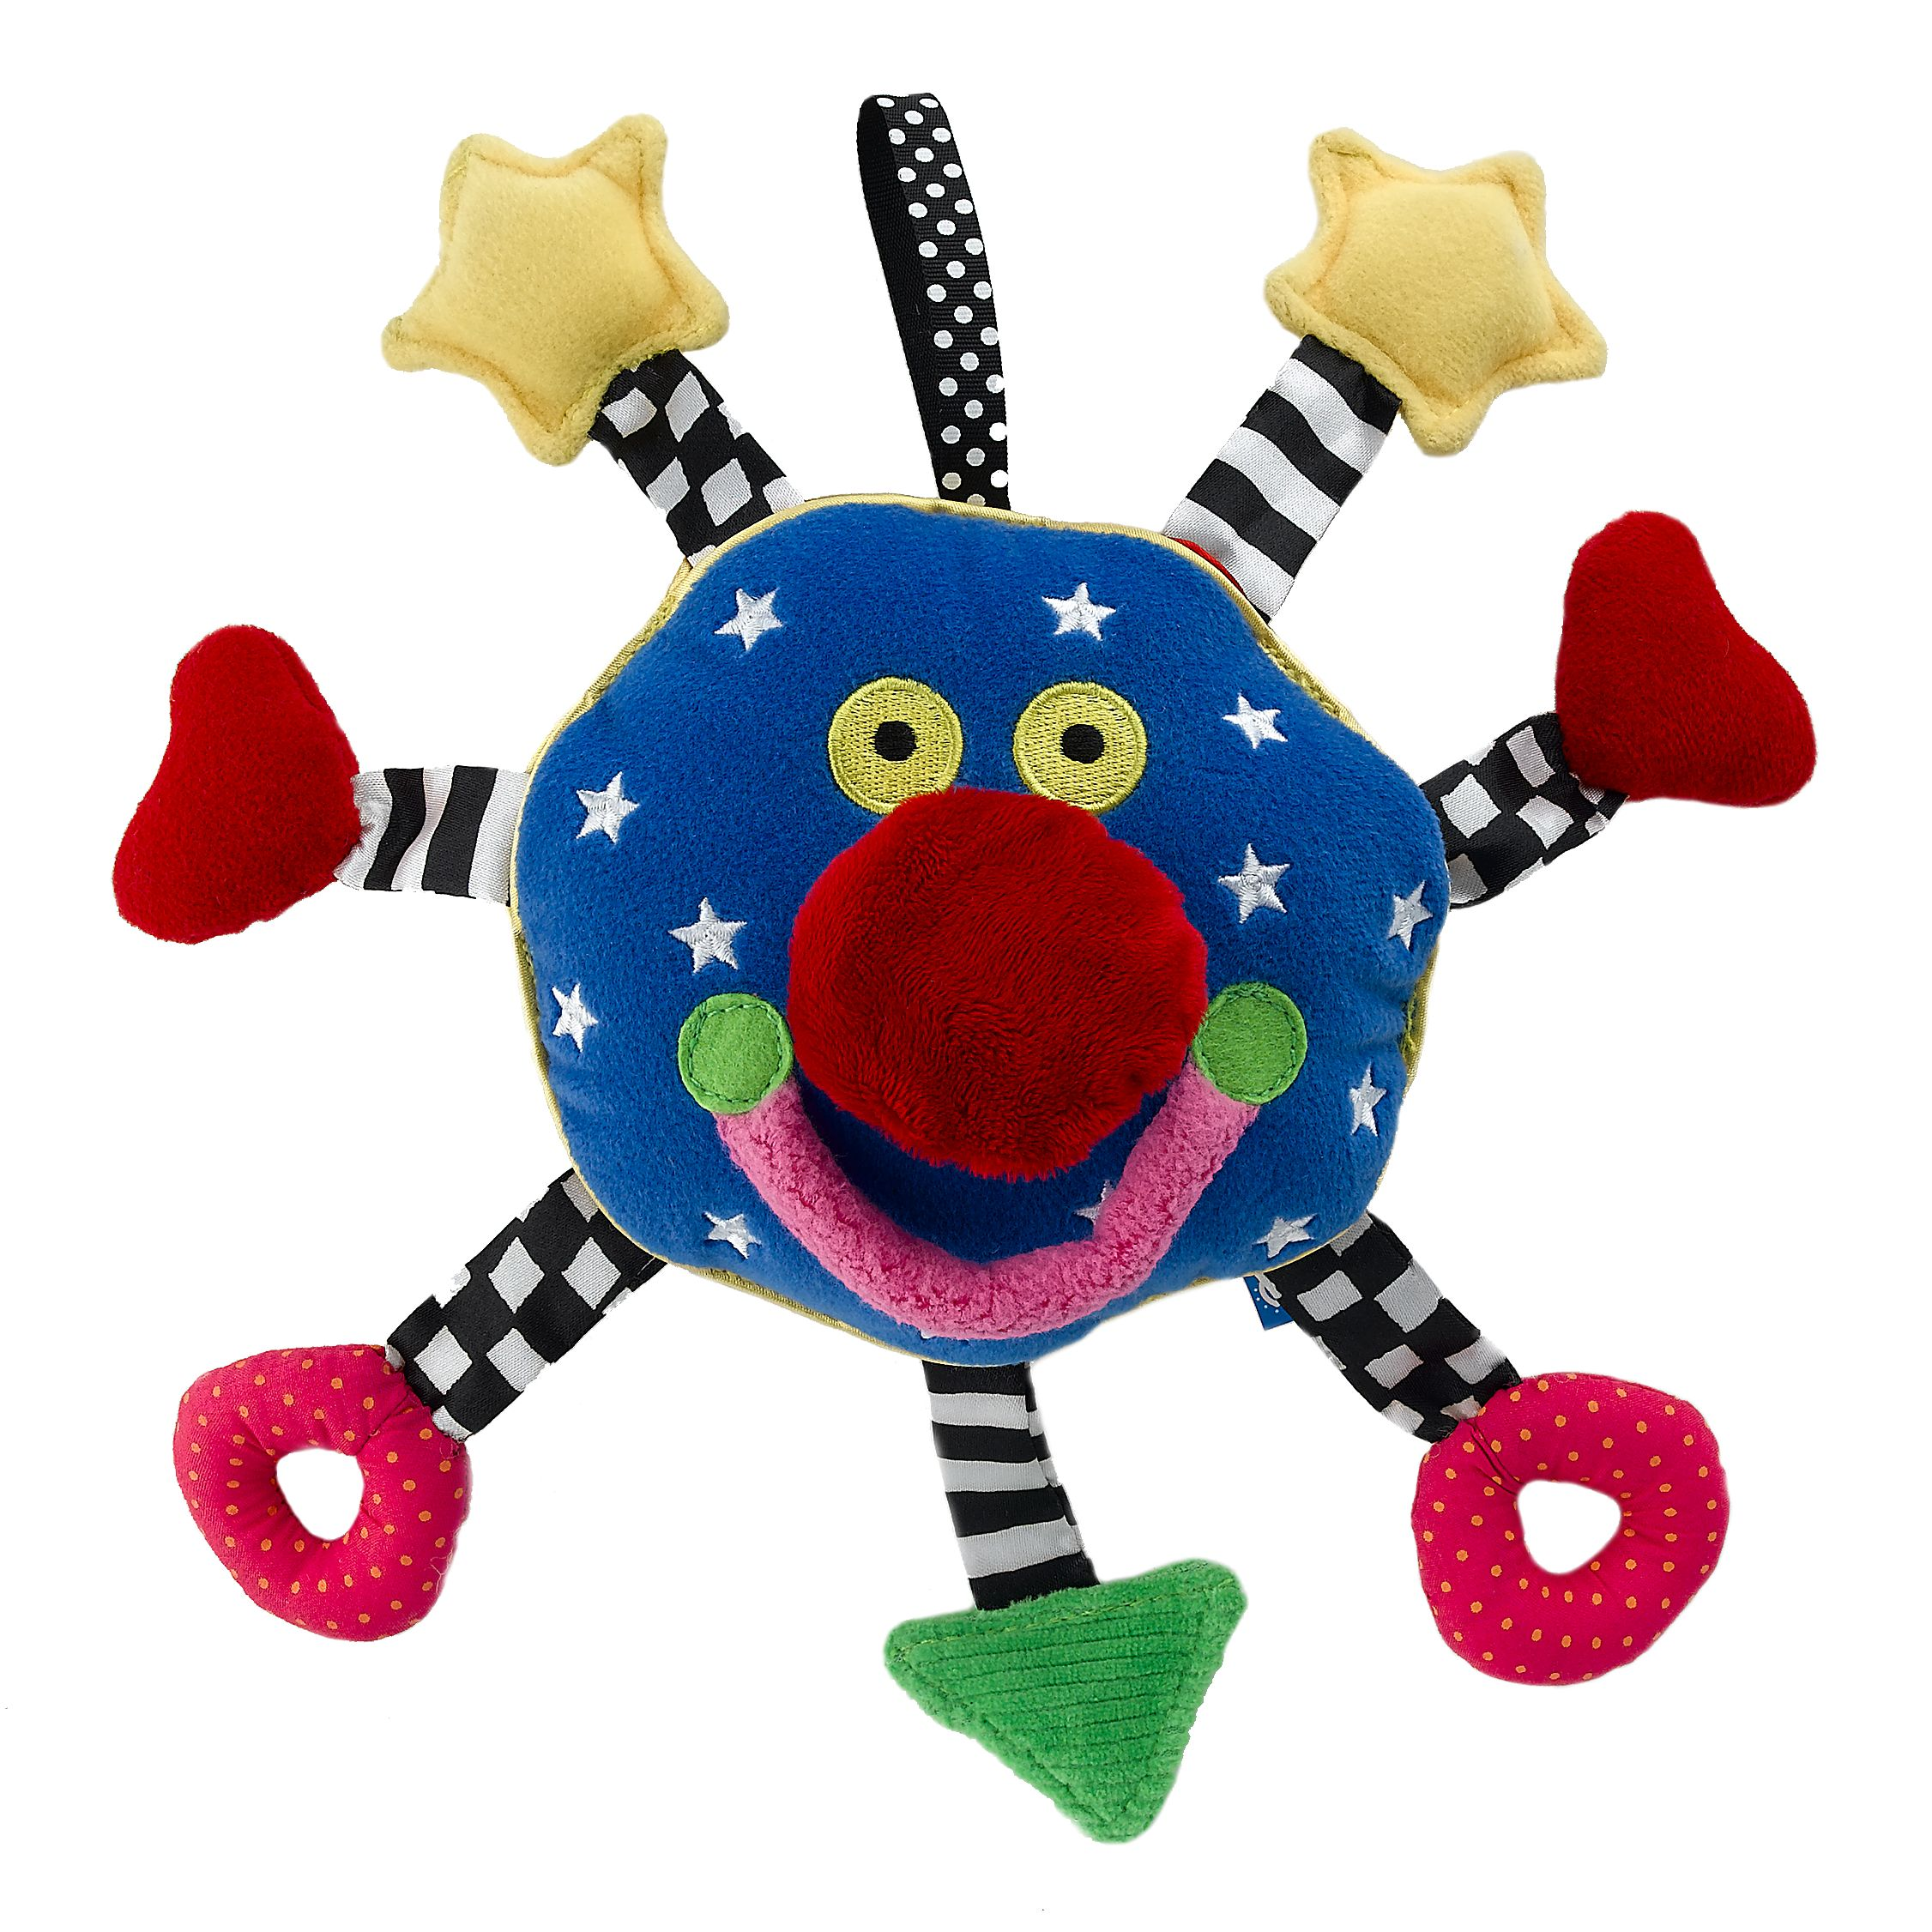 Whoozit Whoozit Activity Toy